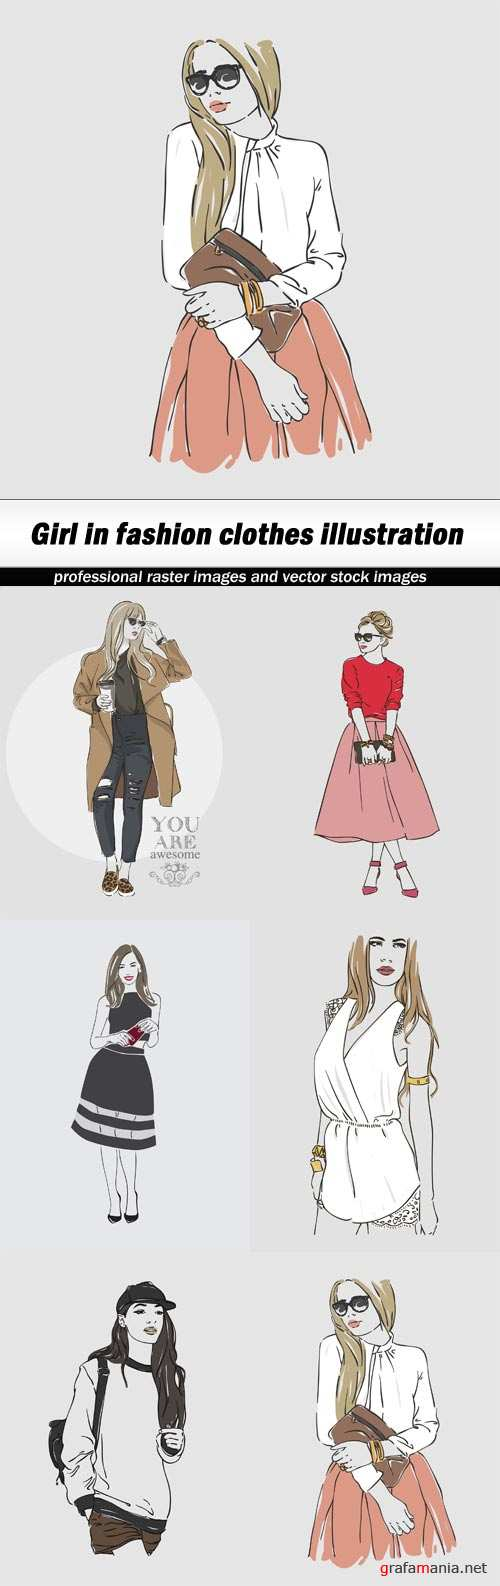 Girl in fashion clothes illustration